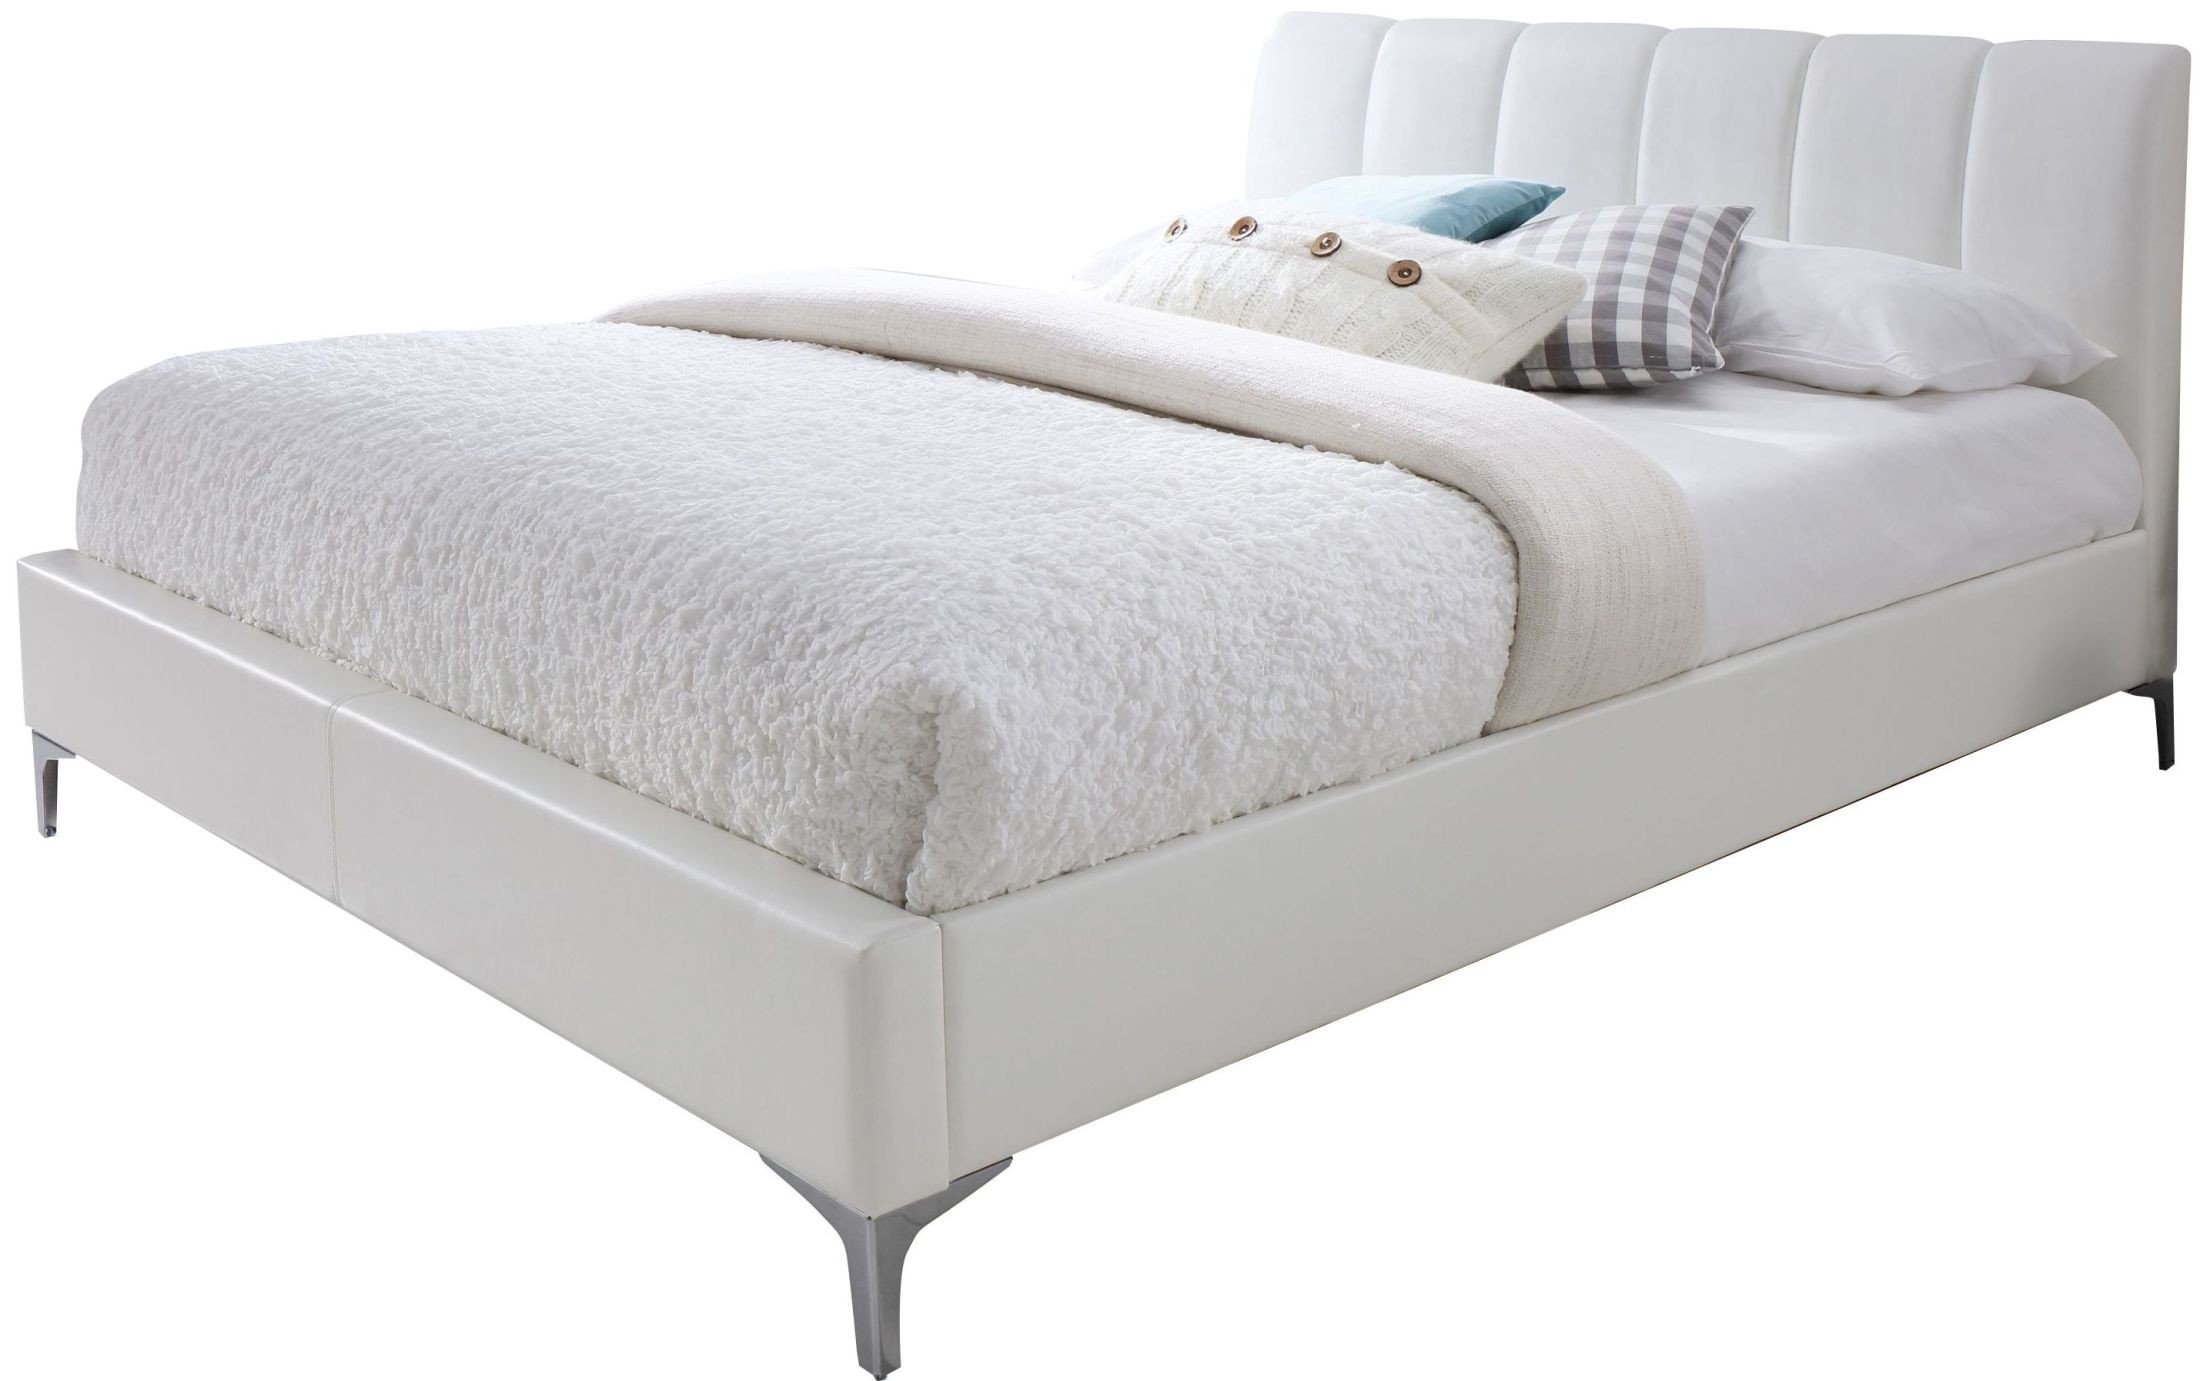 Leona white queen platform bed from jnm coleman furniture - White queen platform bedroom set ...